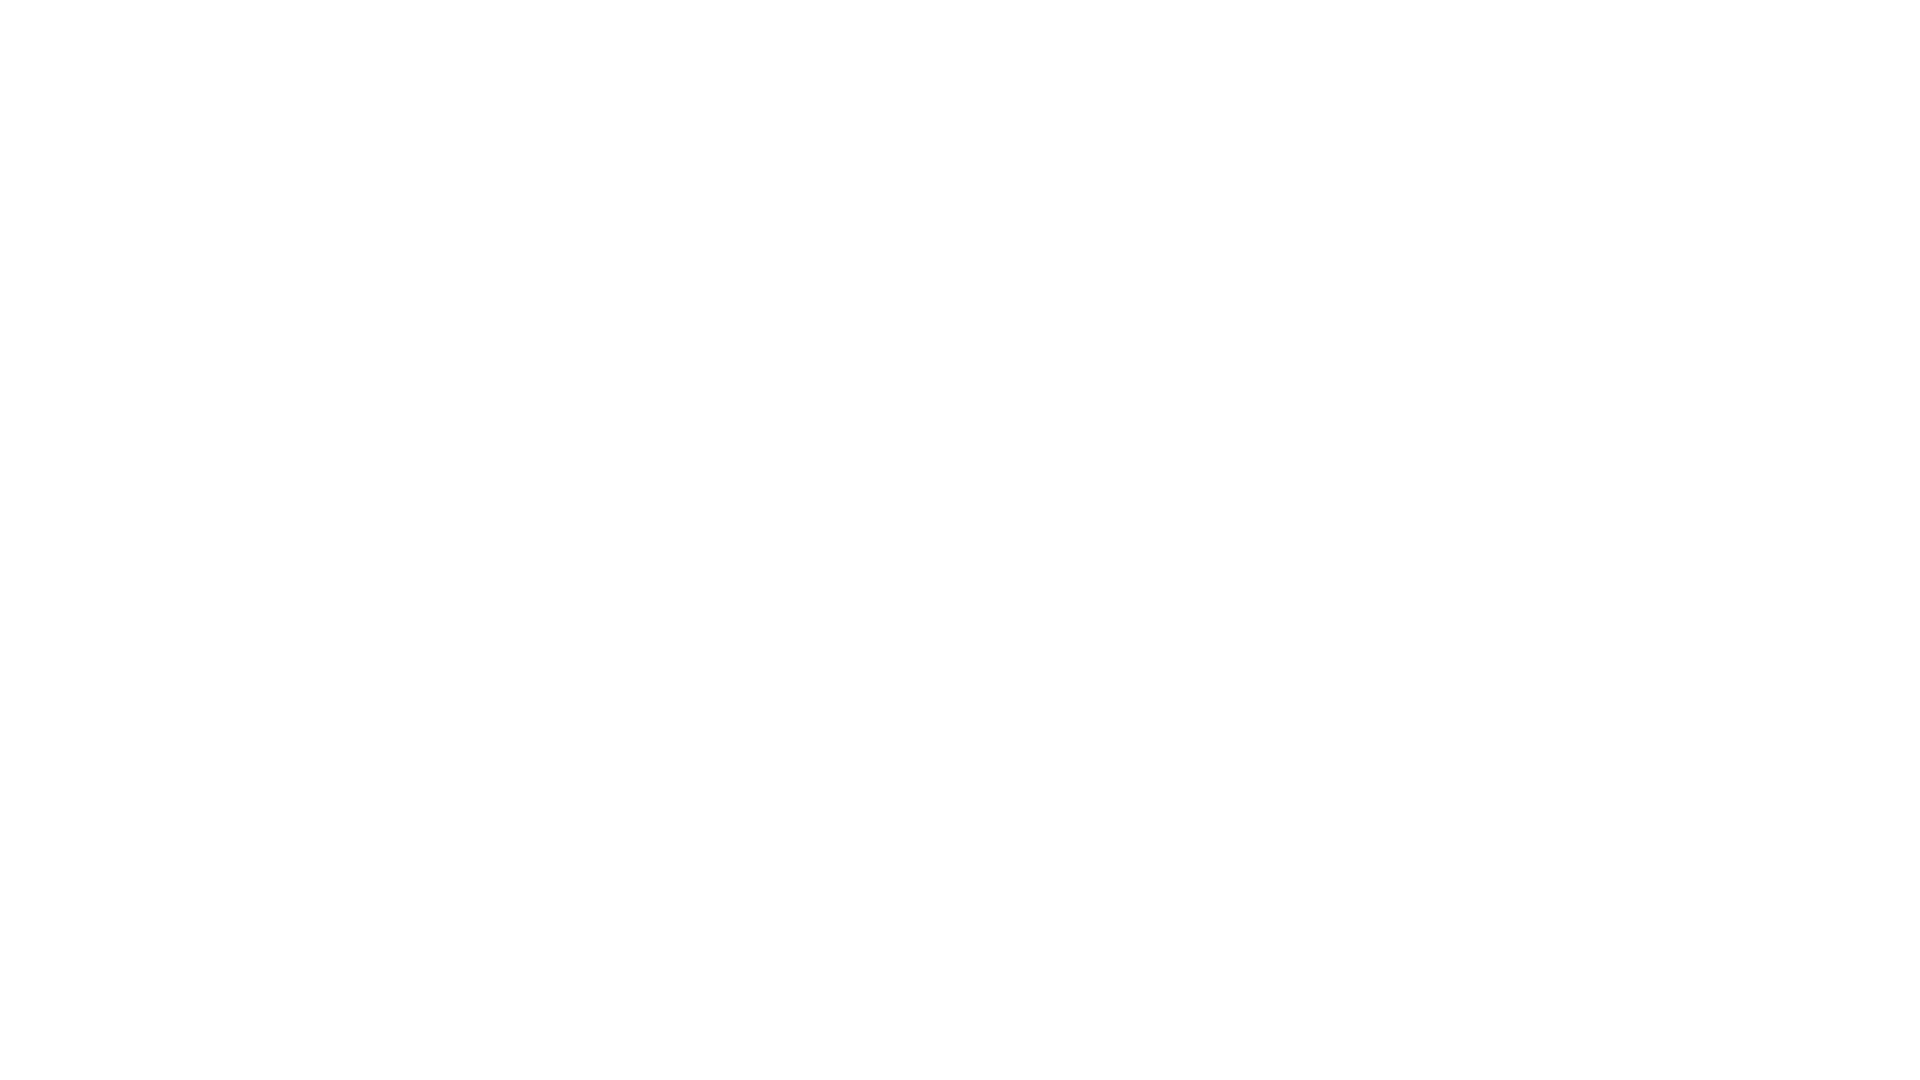 Skin Savvy Medical Spa Logo